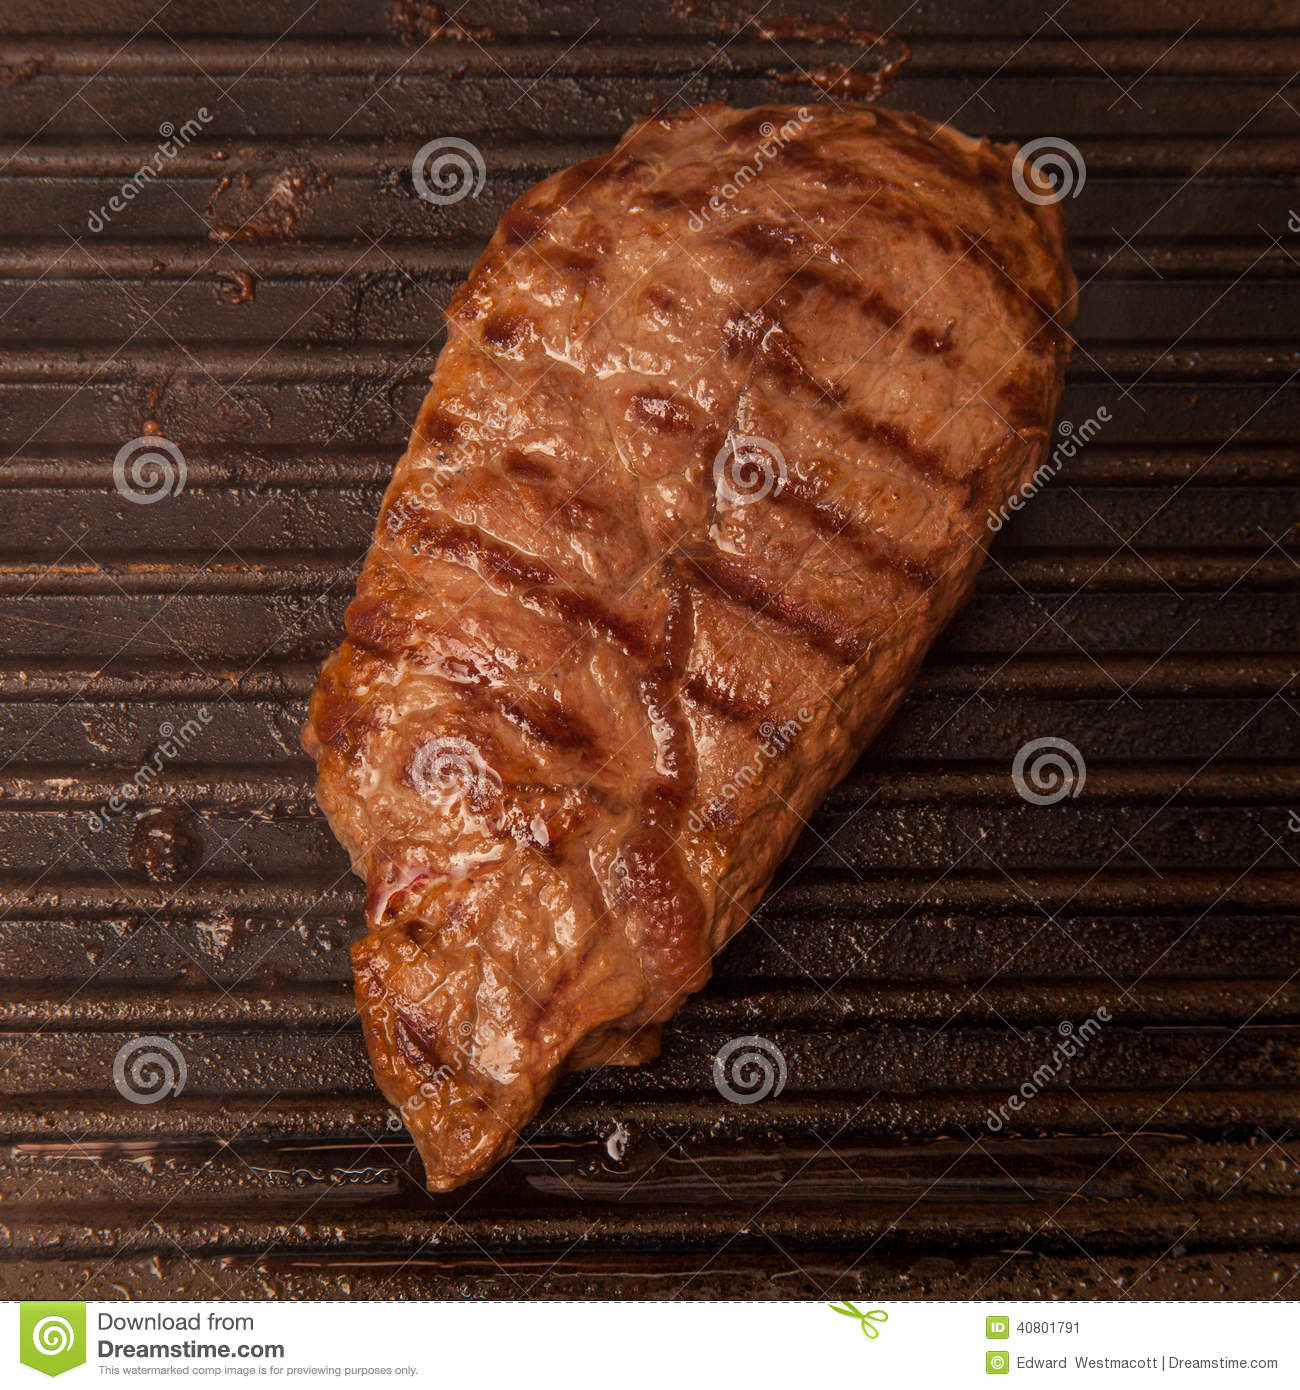 Cooked Horse Meat Steak Stock Photo - Image: 40801791